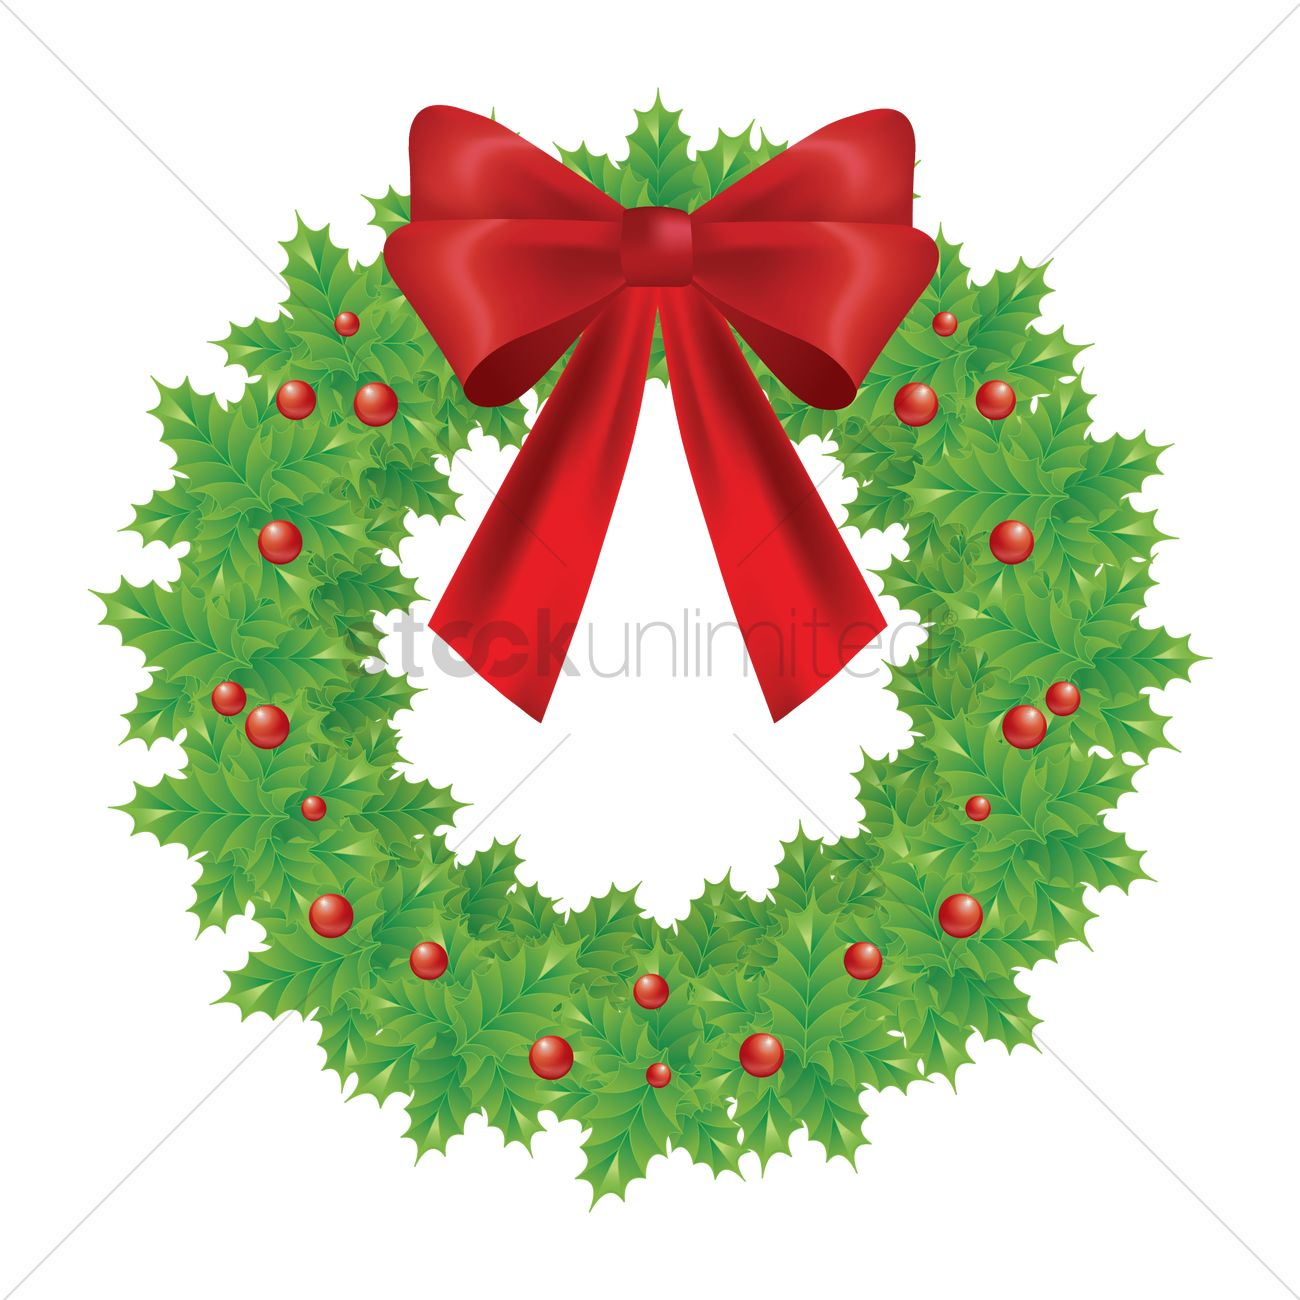 Christmas Wreath Vector.Christmas Wreath Vector Image 1632337 Stockunlimited